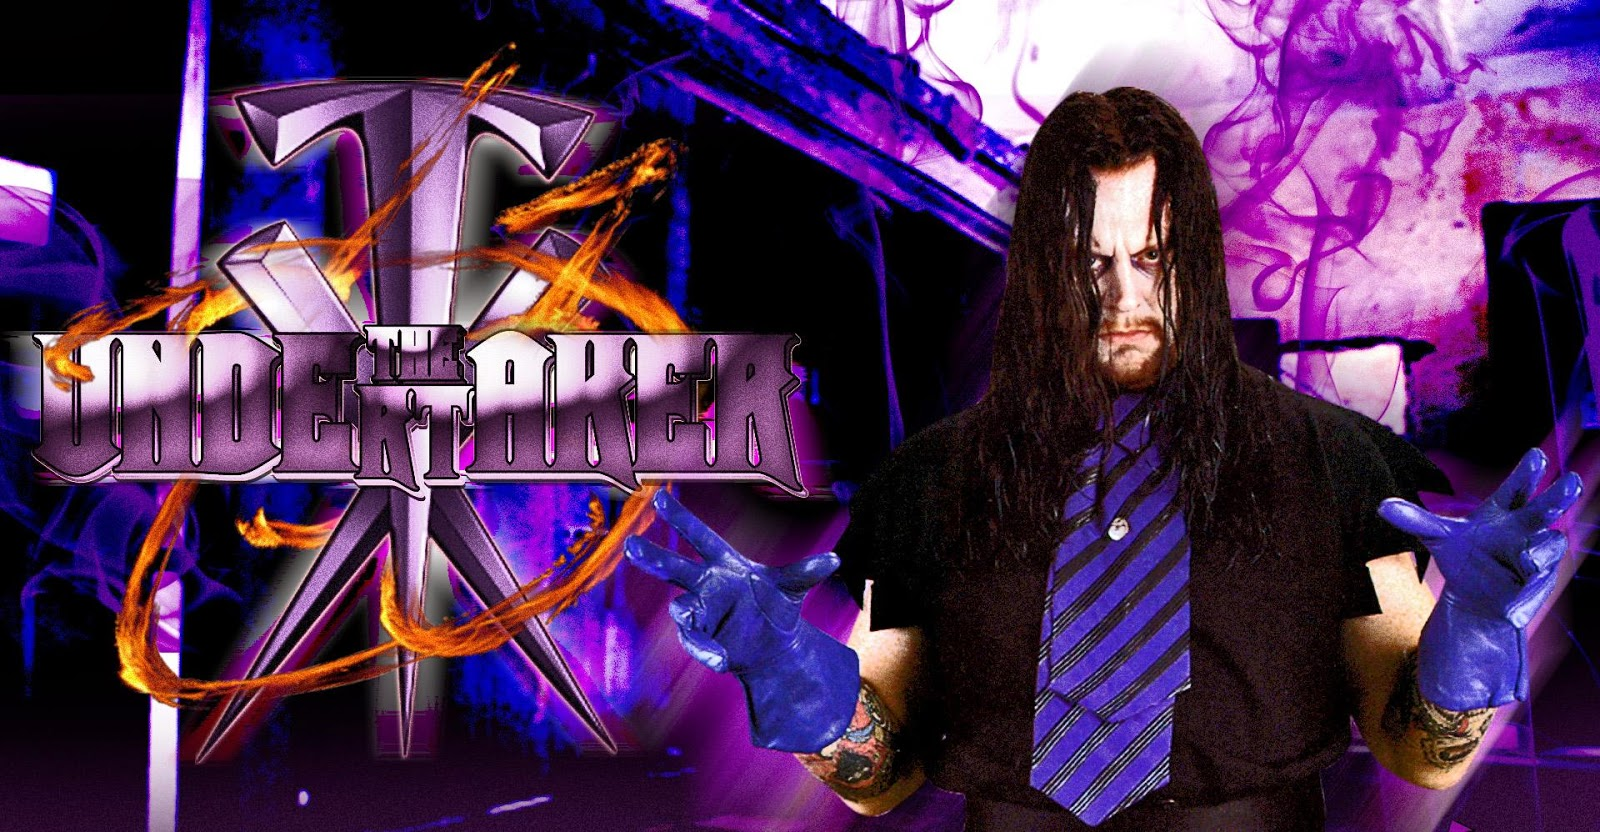 wwe undertaker hd